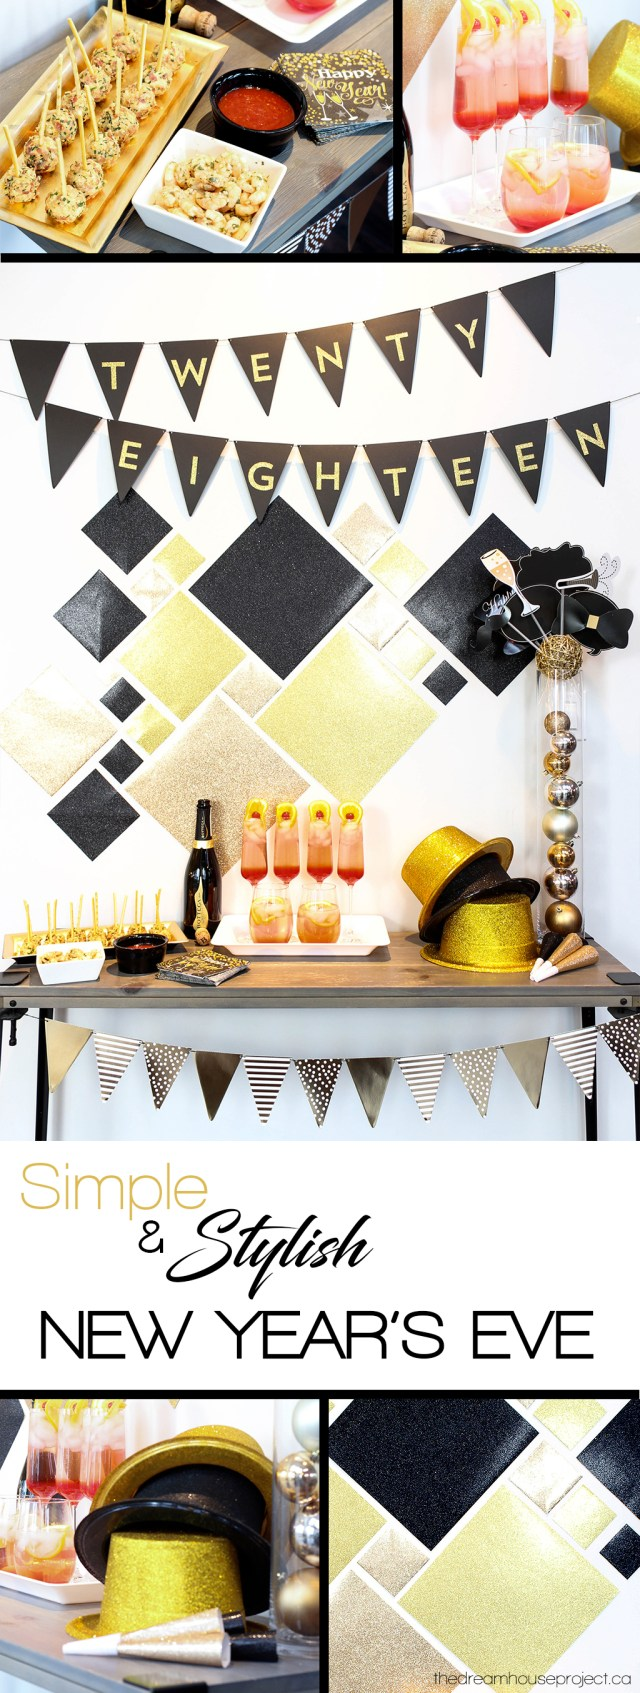 Simple Stylish New Year's Eve with black, gold & glitter decor   The Dreamhouse Project